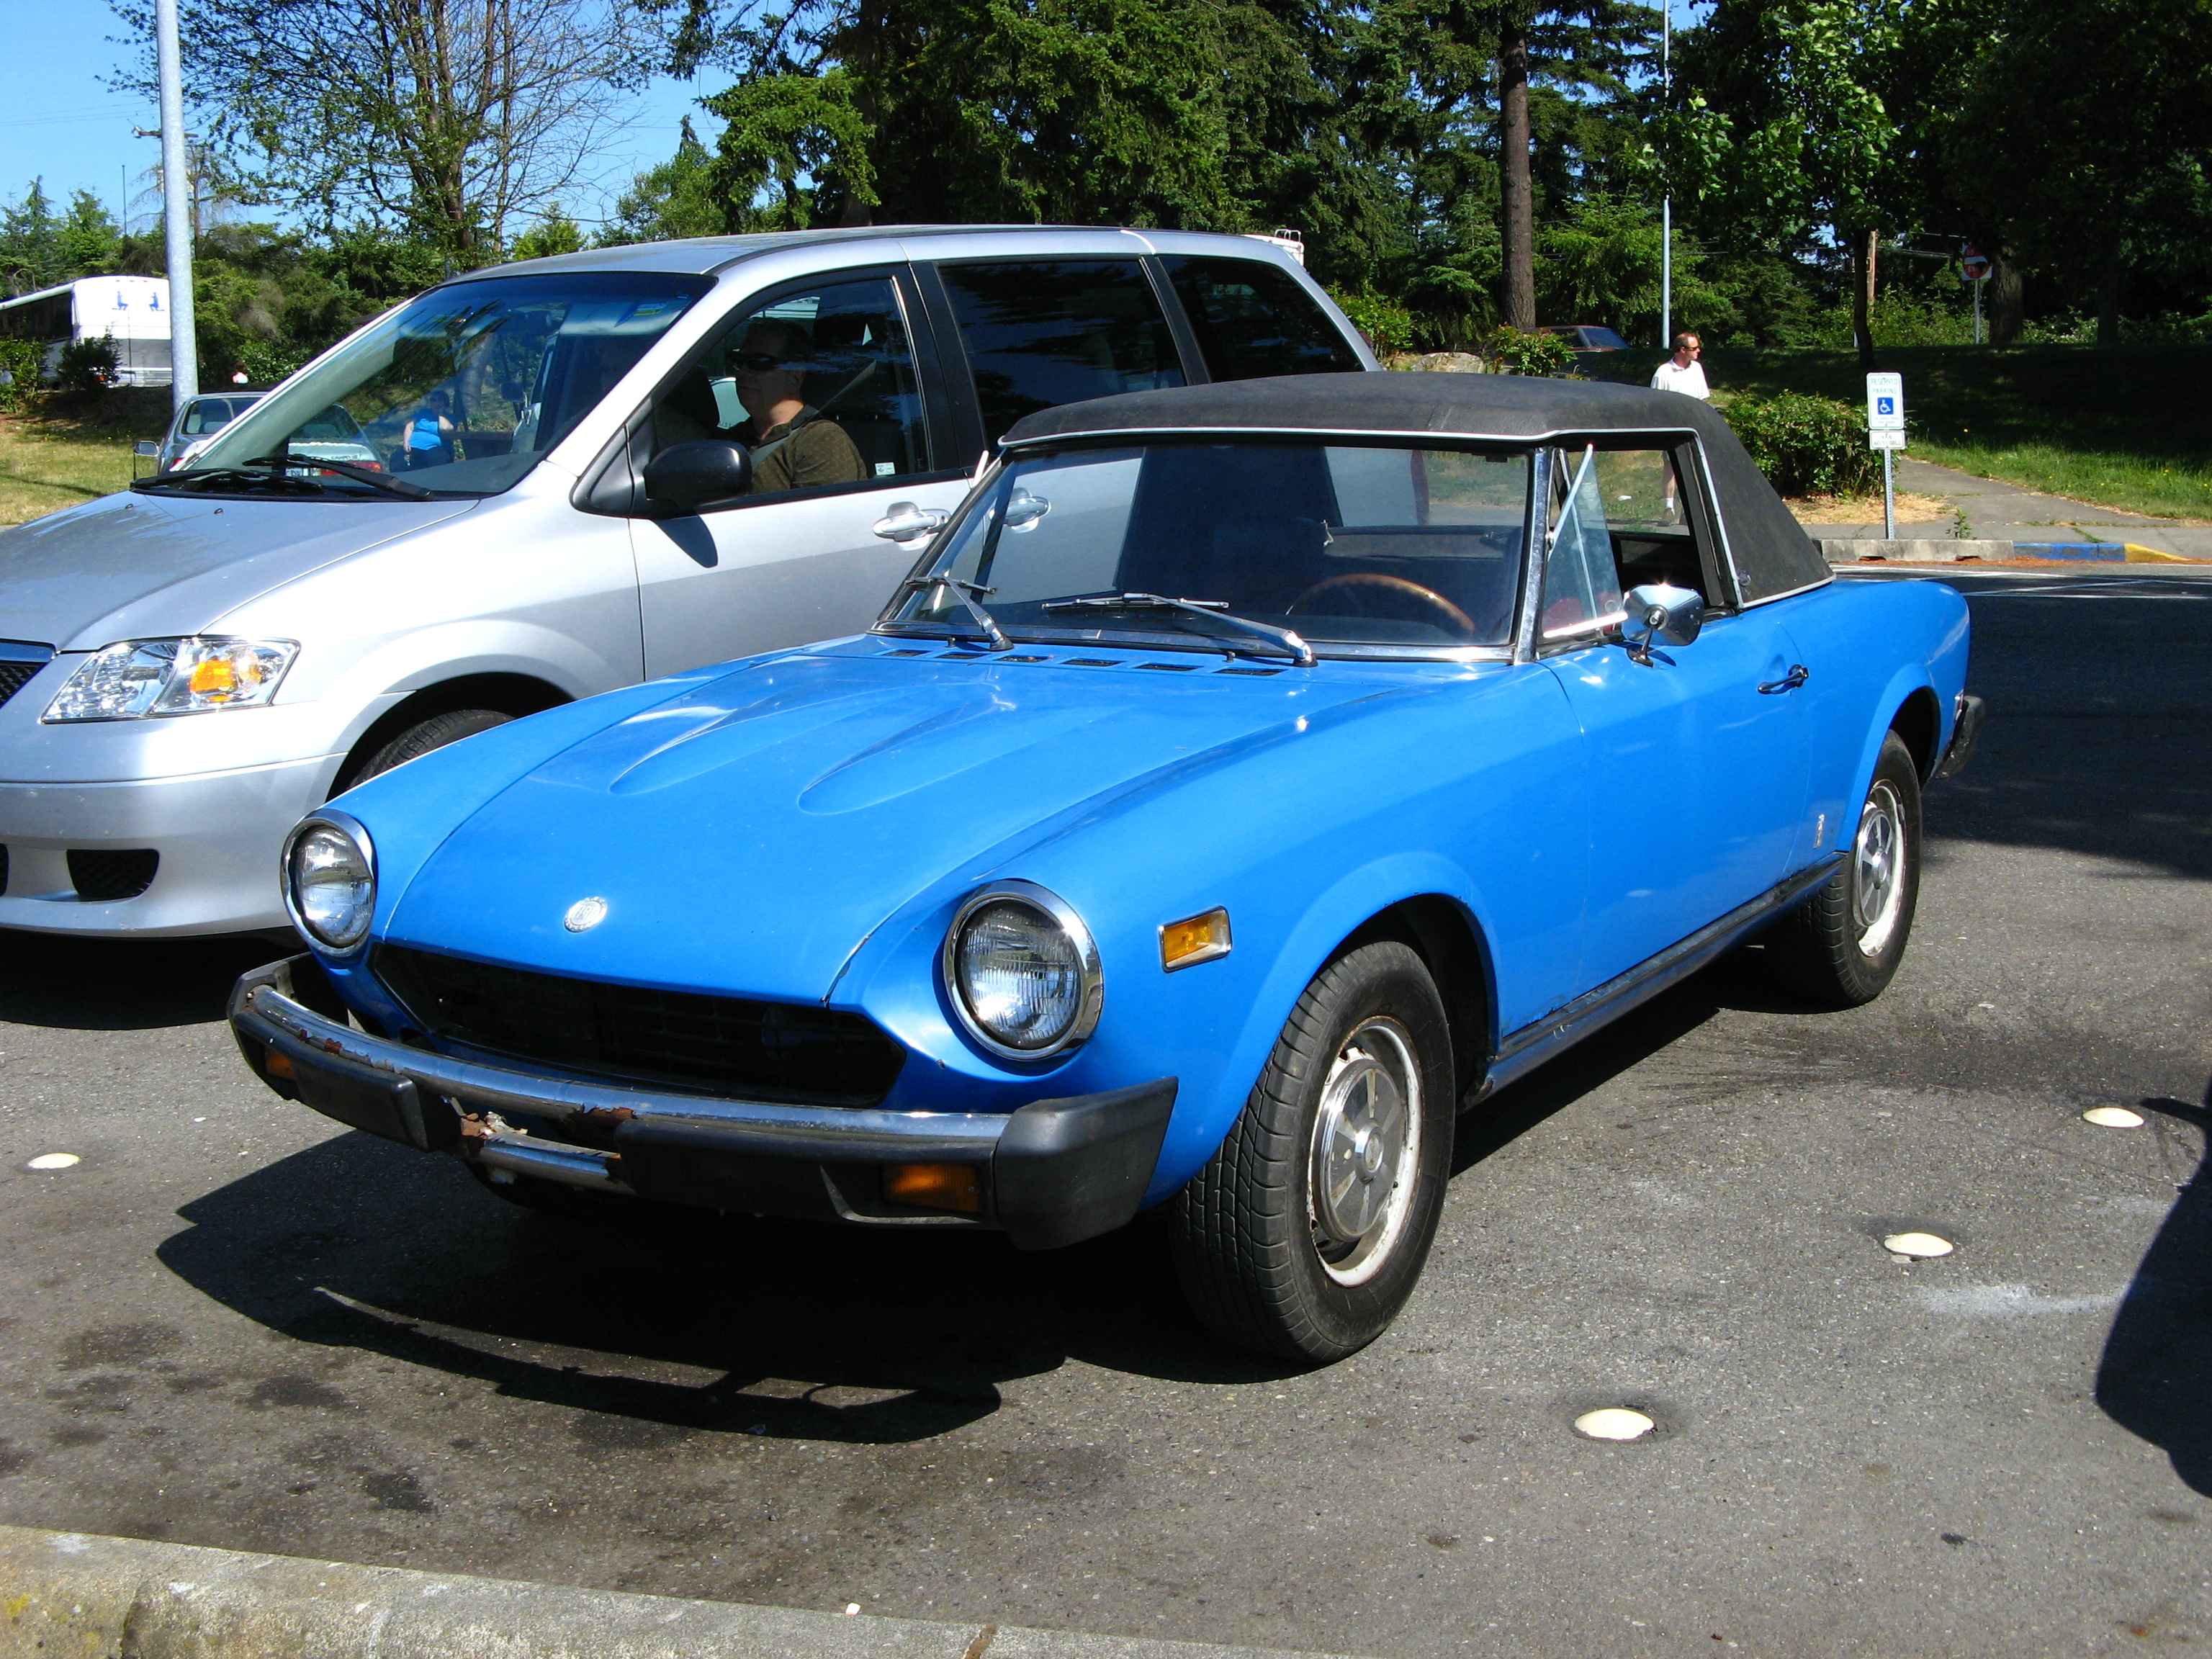 1975 fiat 124 information and photos momentcar - 1975 fiat 124 sport coupe ...